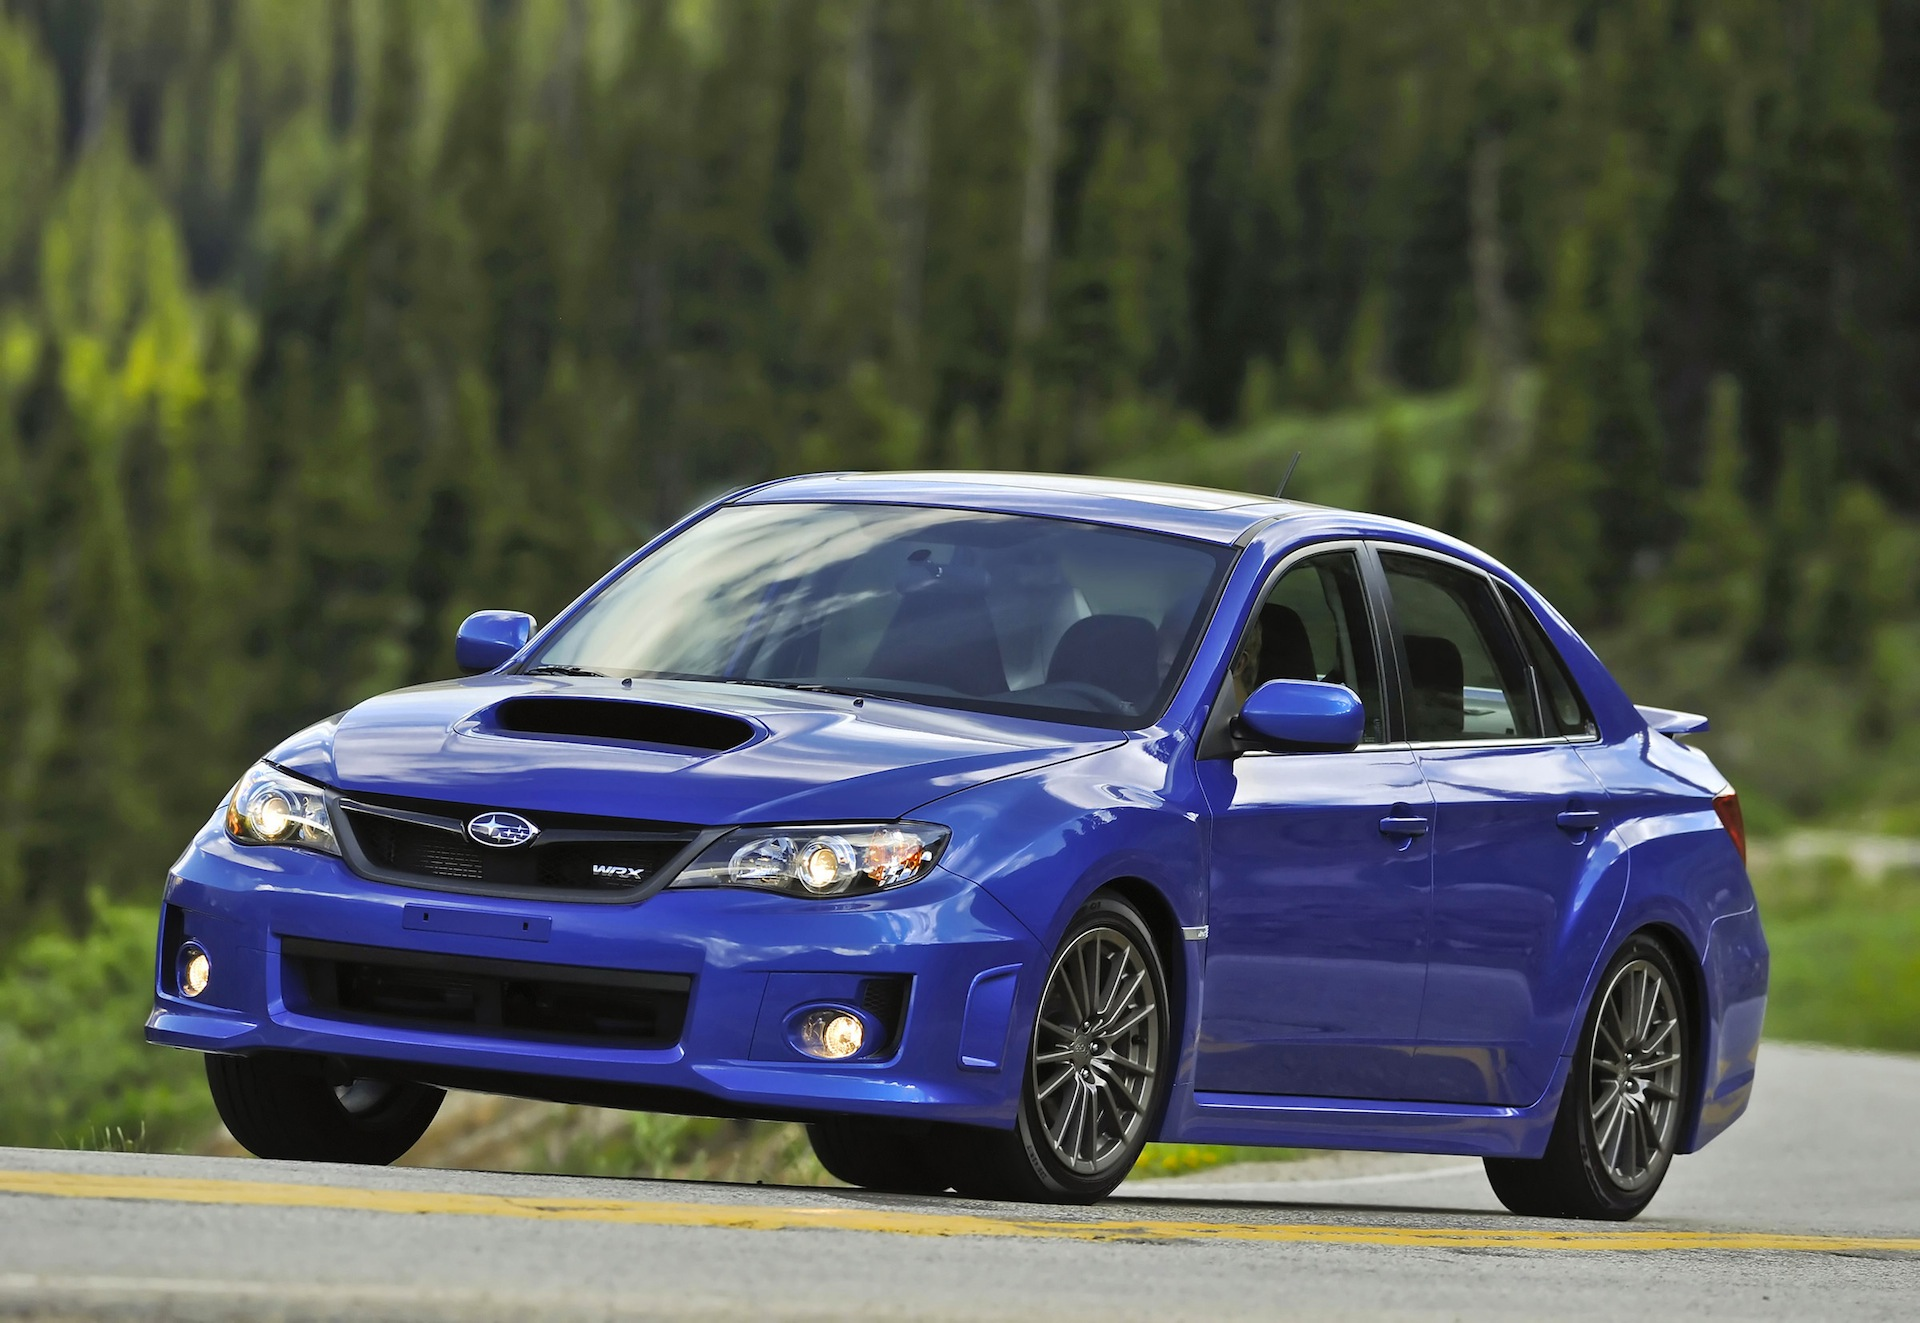 2014 subaru wrx and wrx sti pricing info. Black Bedroom Furniture Sets. Home Design Ideas